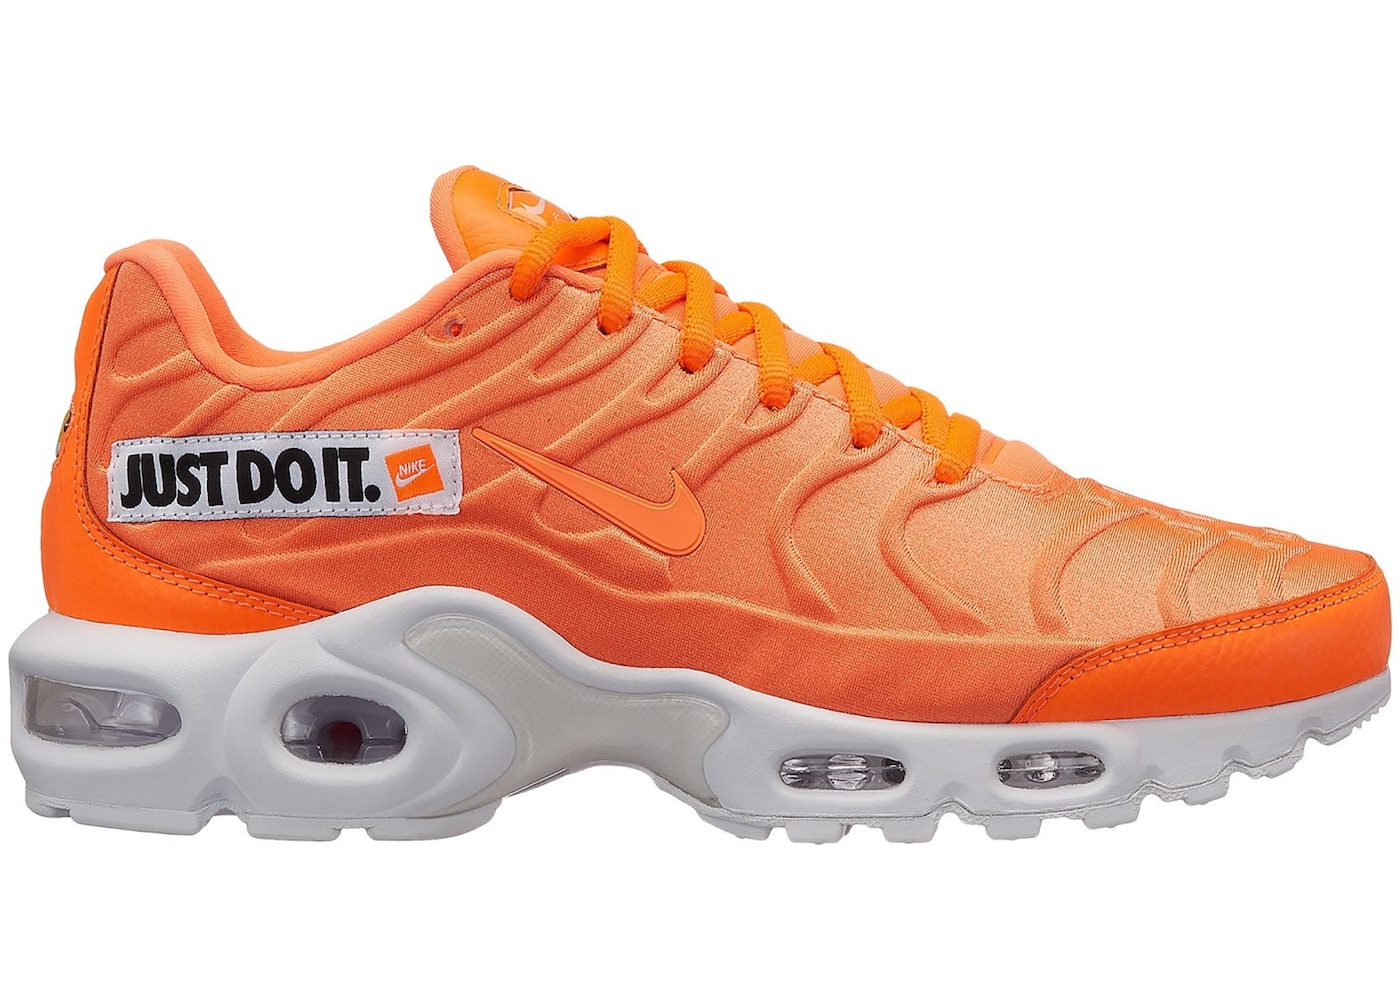 Air Max Plus Just Do It Pack Orange (W) - 862201-800